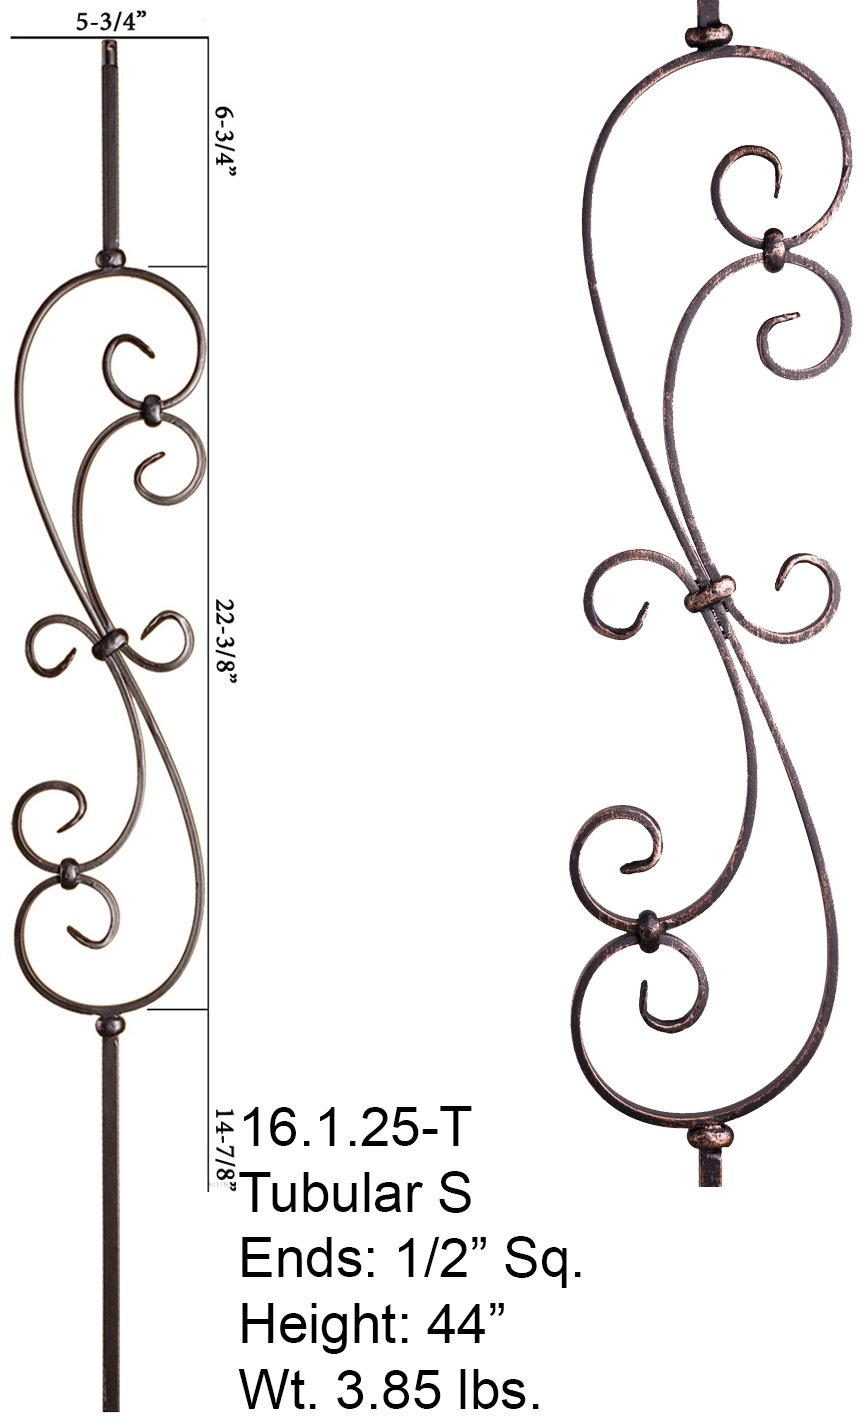 Oil Rubbed Bronze 16.1.25-T Hollow S-Scroll Iron Baluster for Staircase Remodel , Box of 5 by House of Forgings